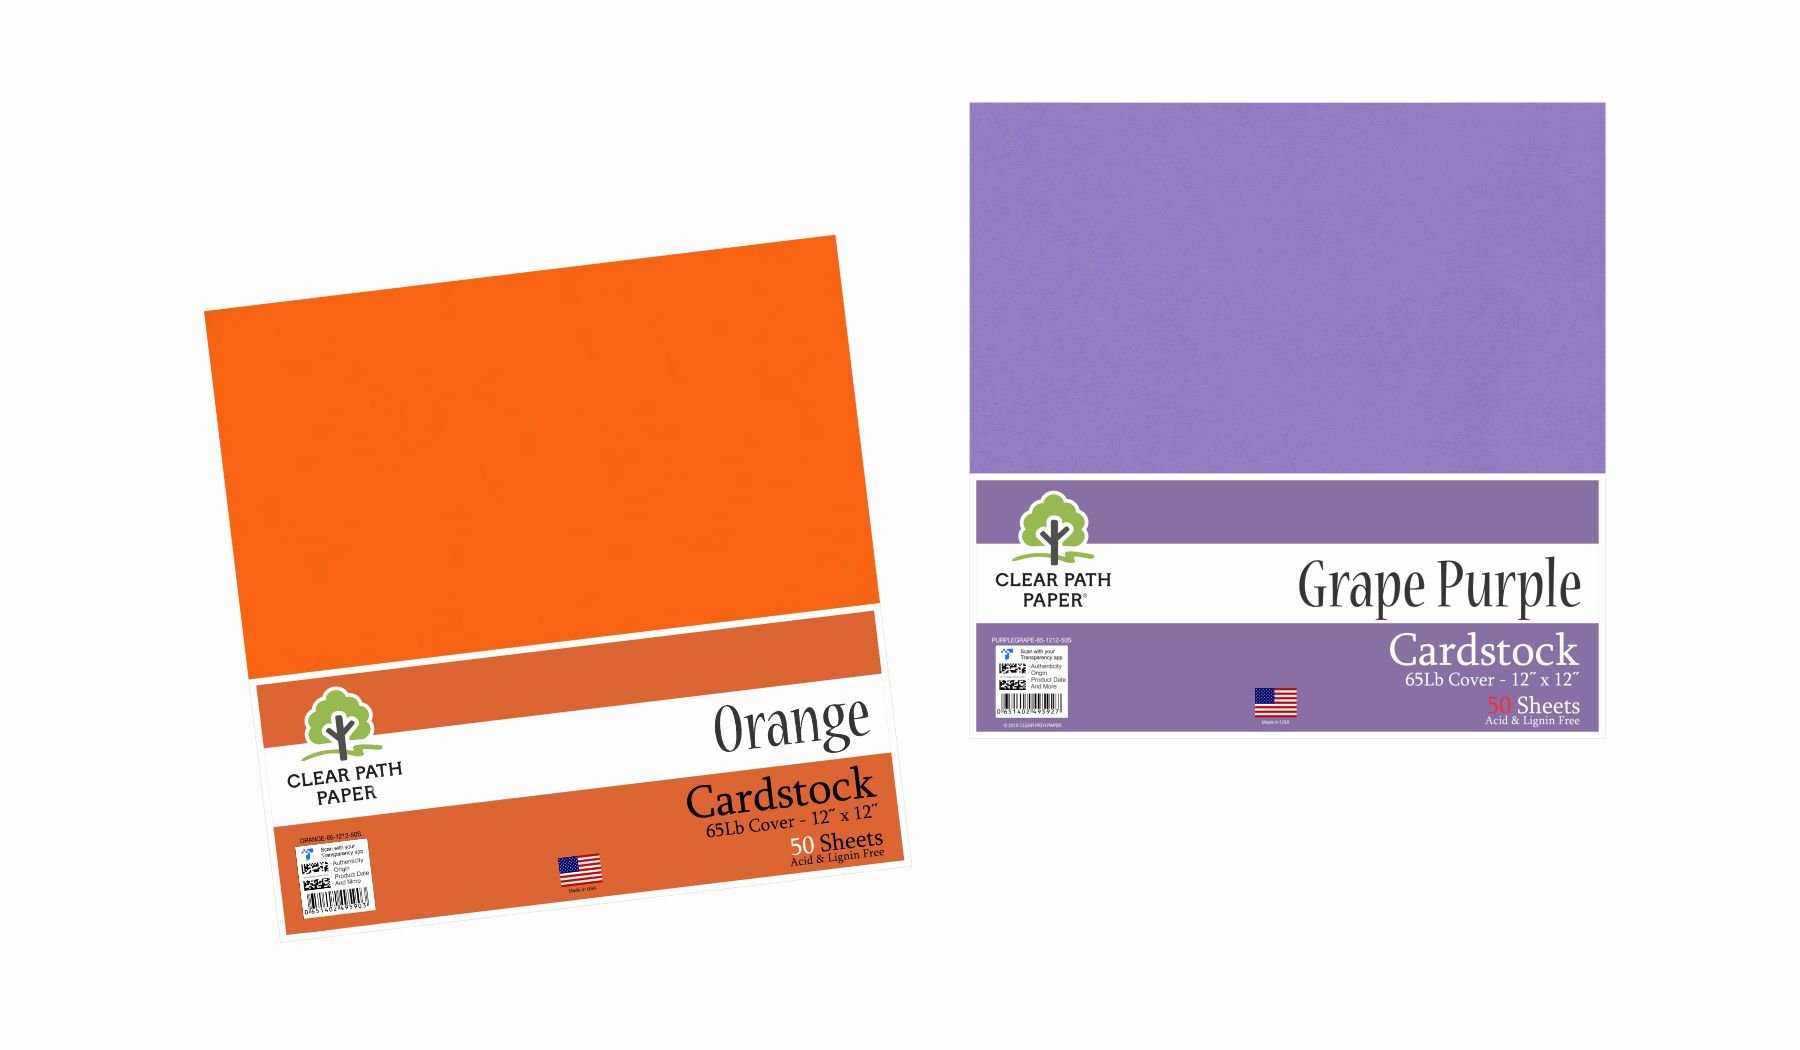 Image of an Amazon bundle of Orange and Grape Purple cardstock packs